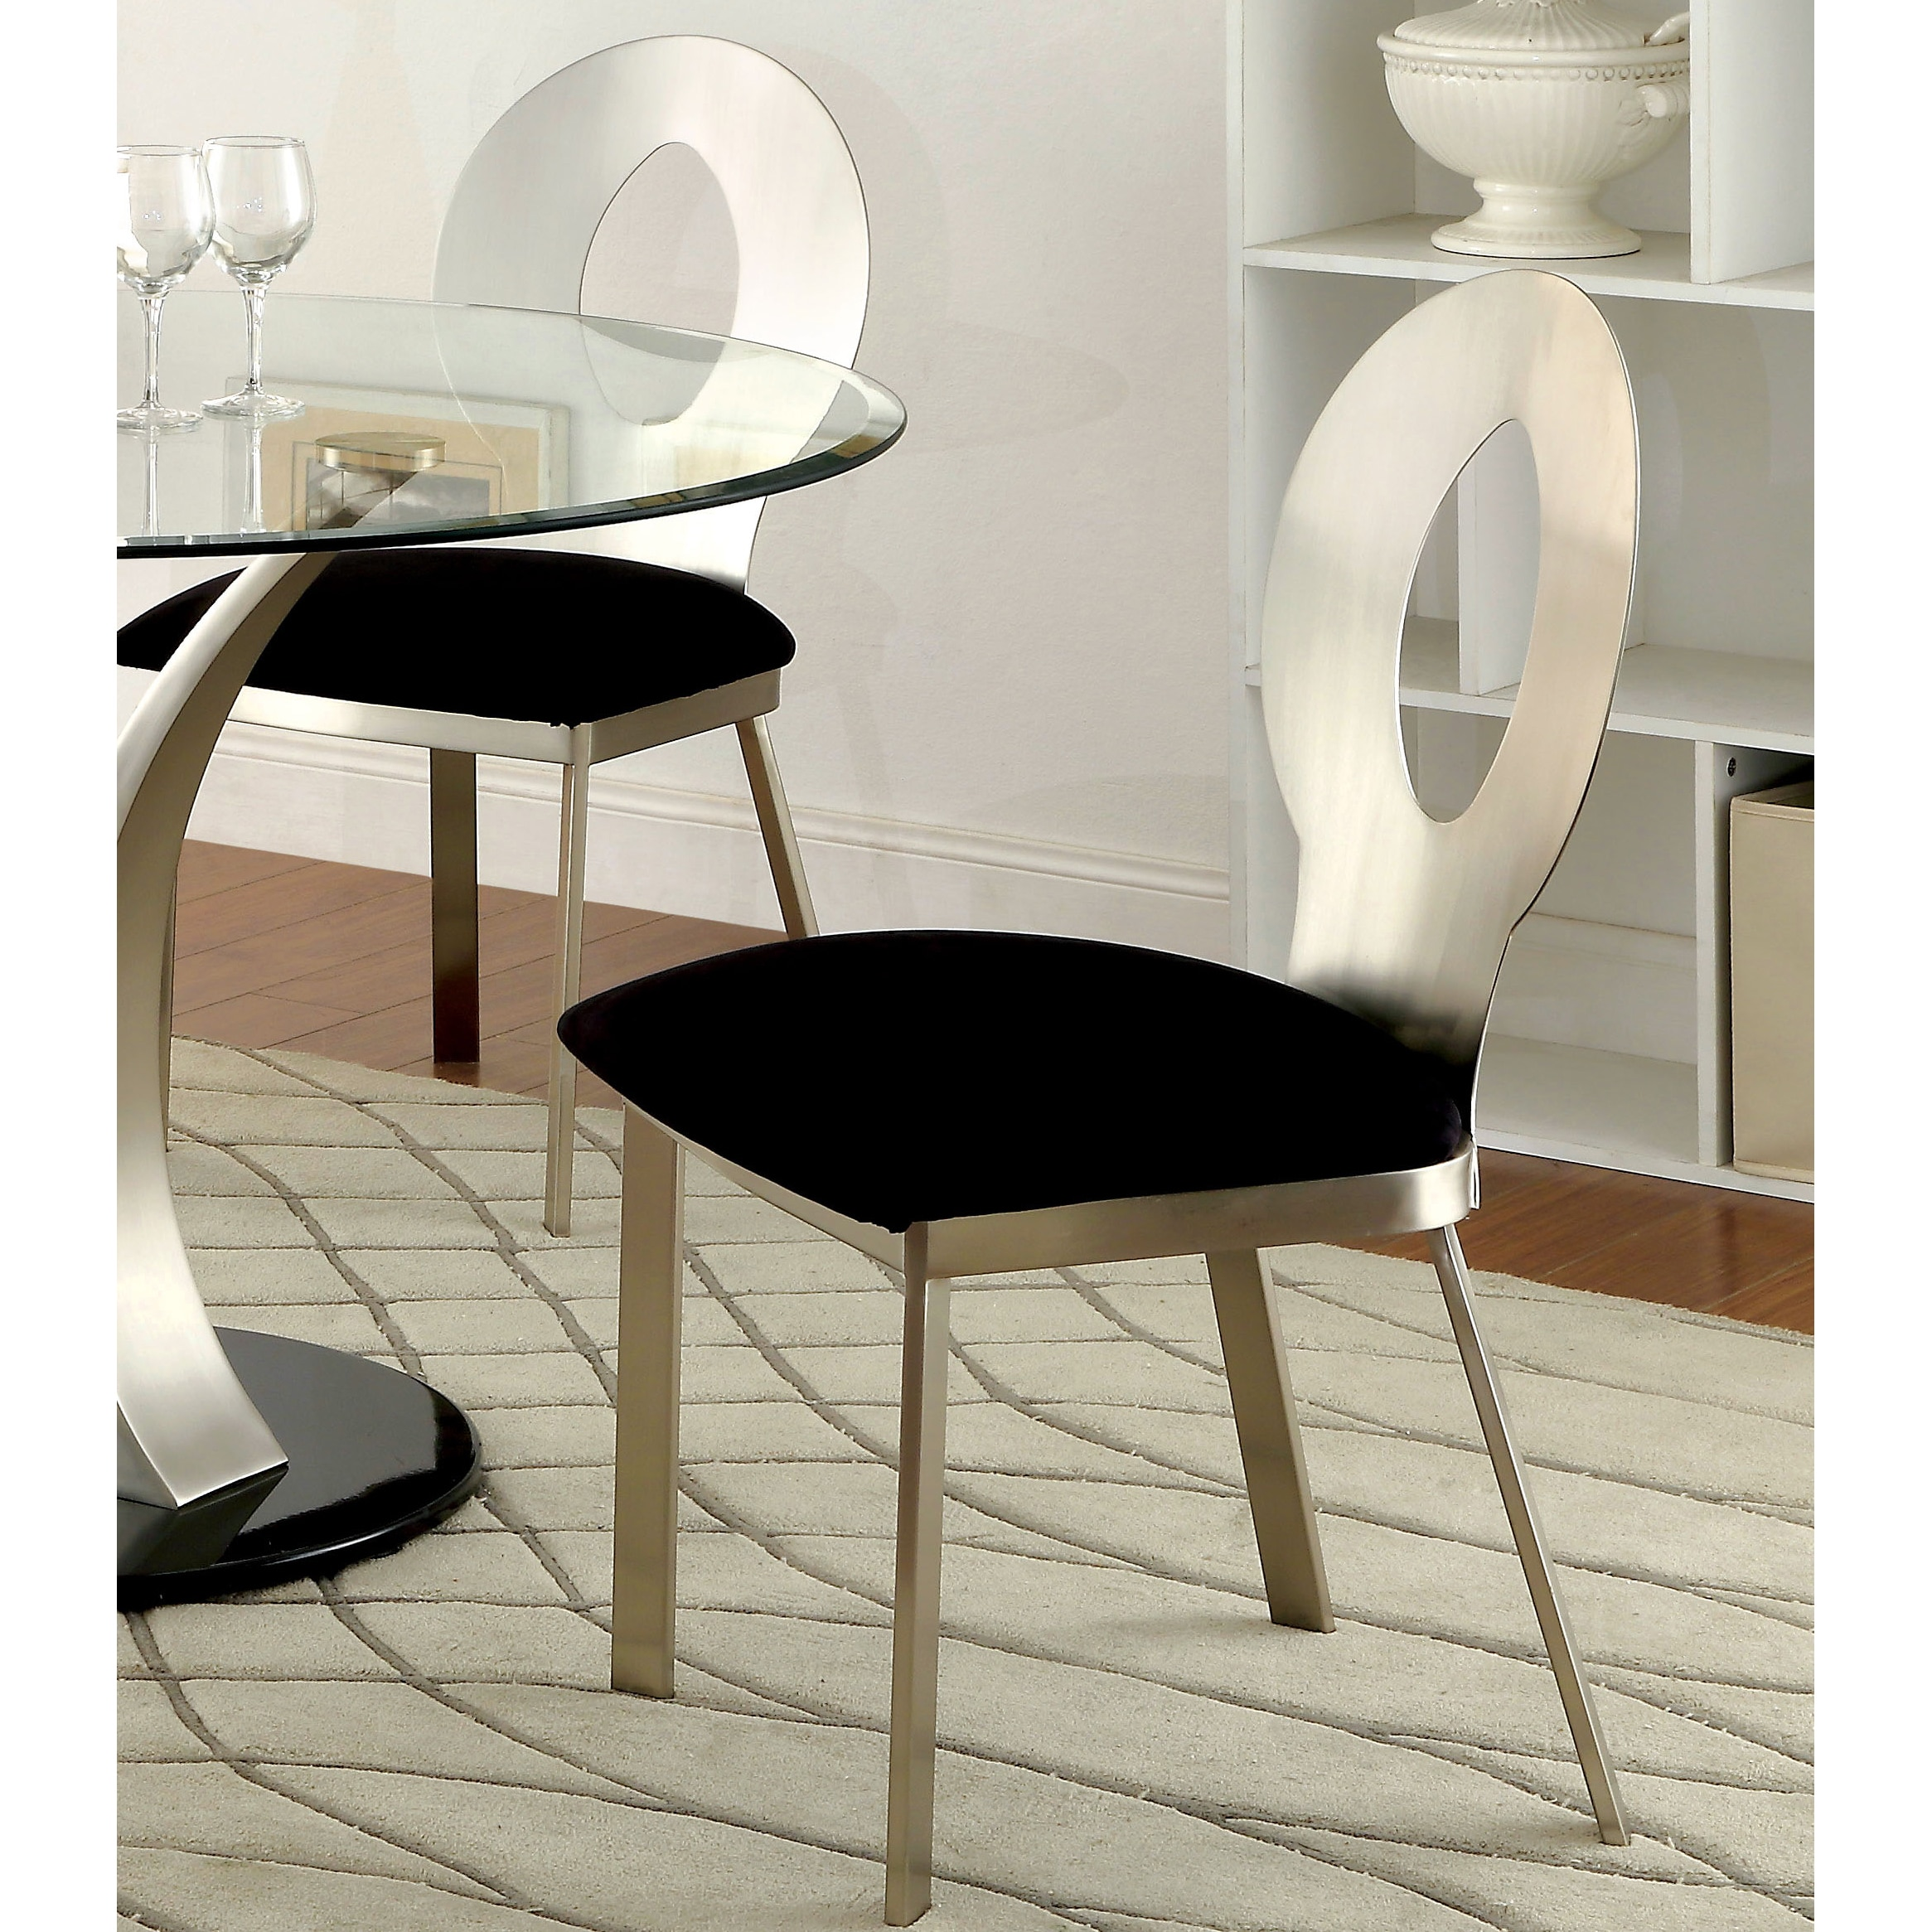 Silver Dining Chairs Sculpture Iii Contemporary Silver Dining Chair By Foa